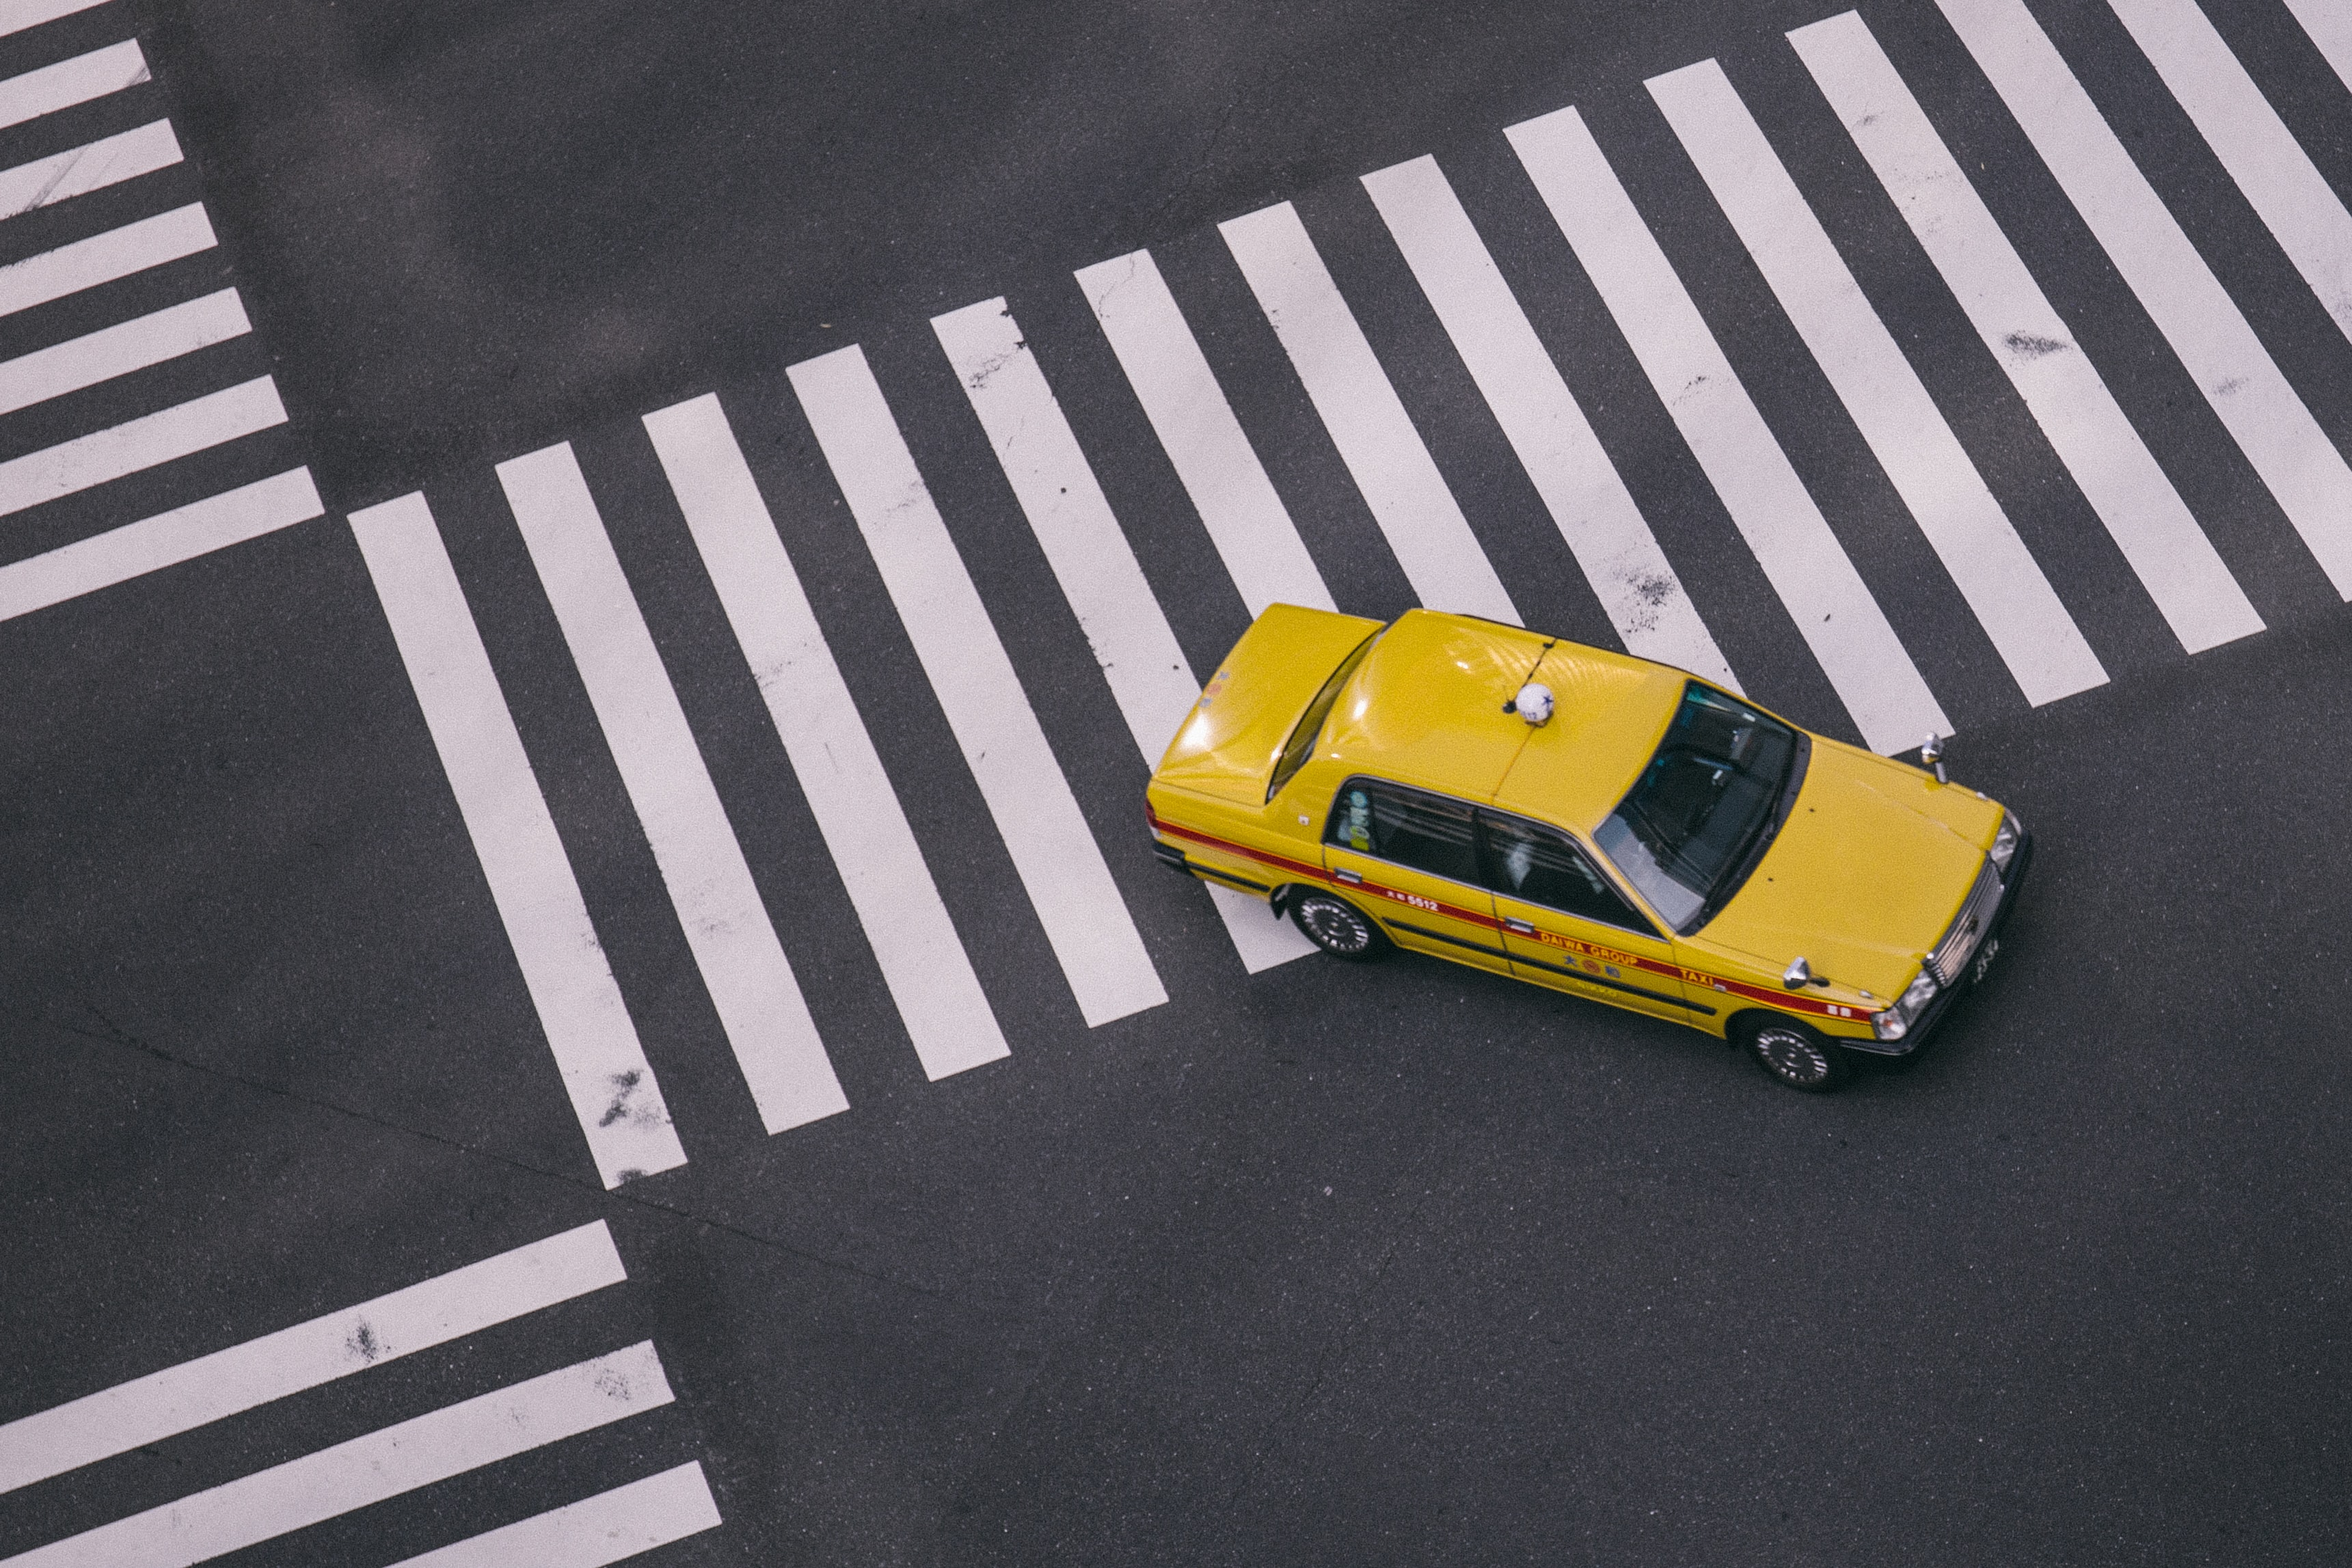 yellow taxi on gray pave road during daytime